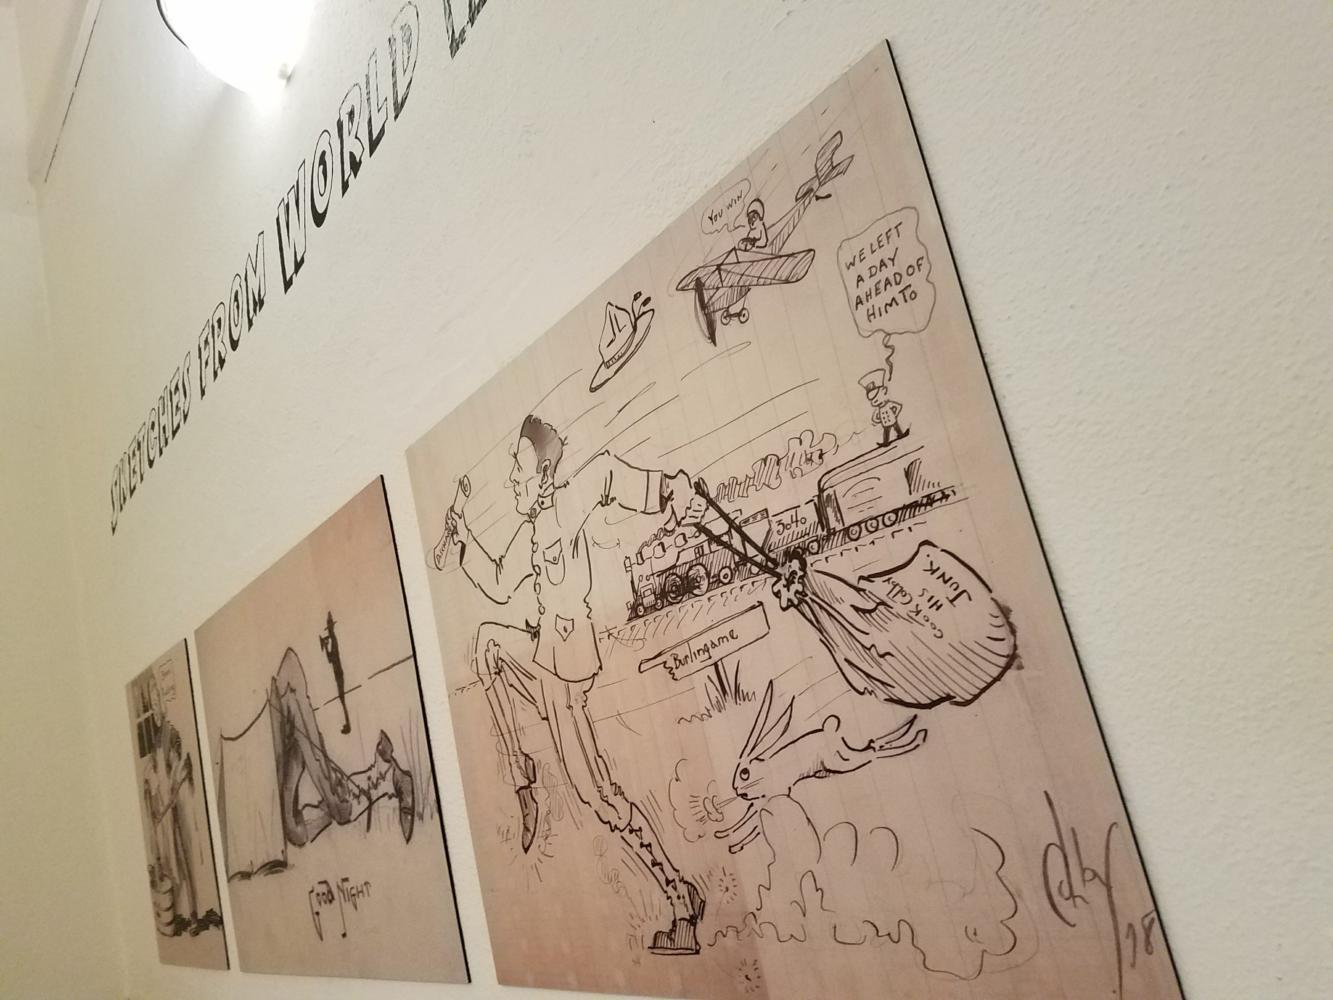 Various sketches hang from the rotunda walls depicting soldier Alvin Colby's daily life while deployed during World War One.